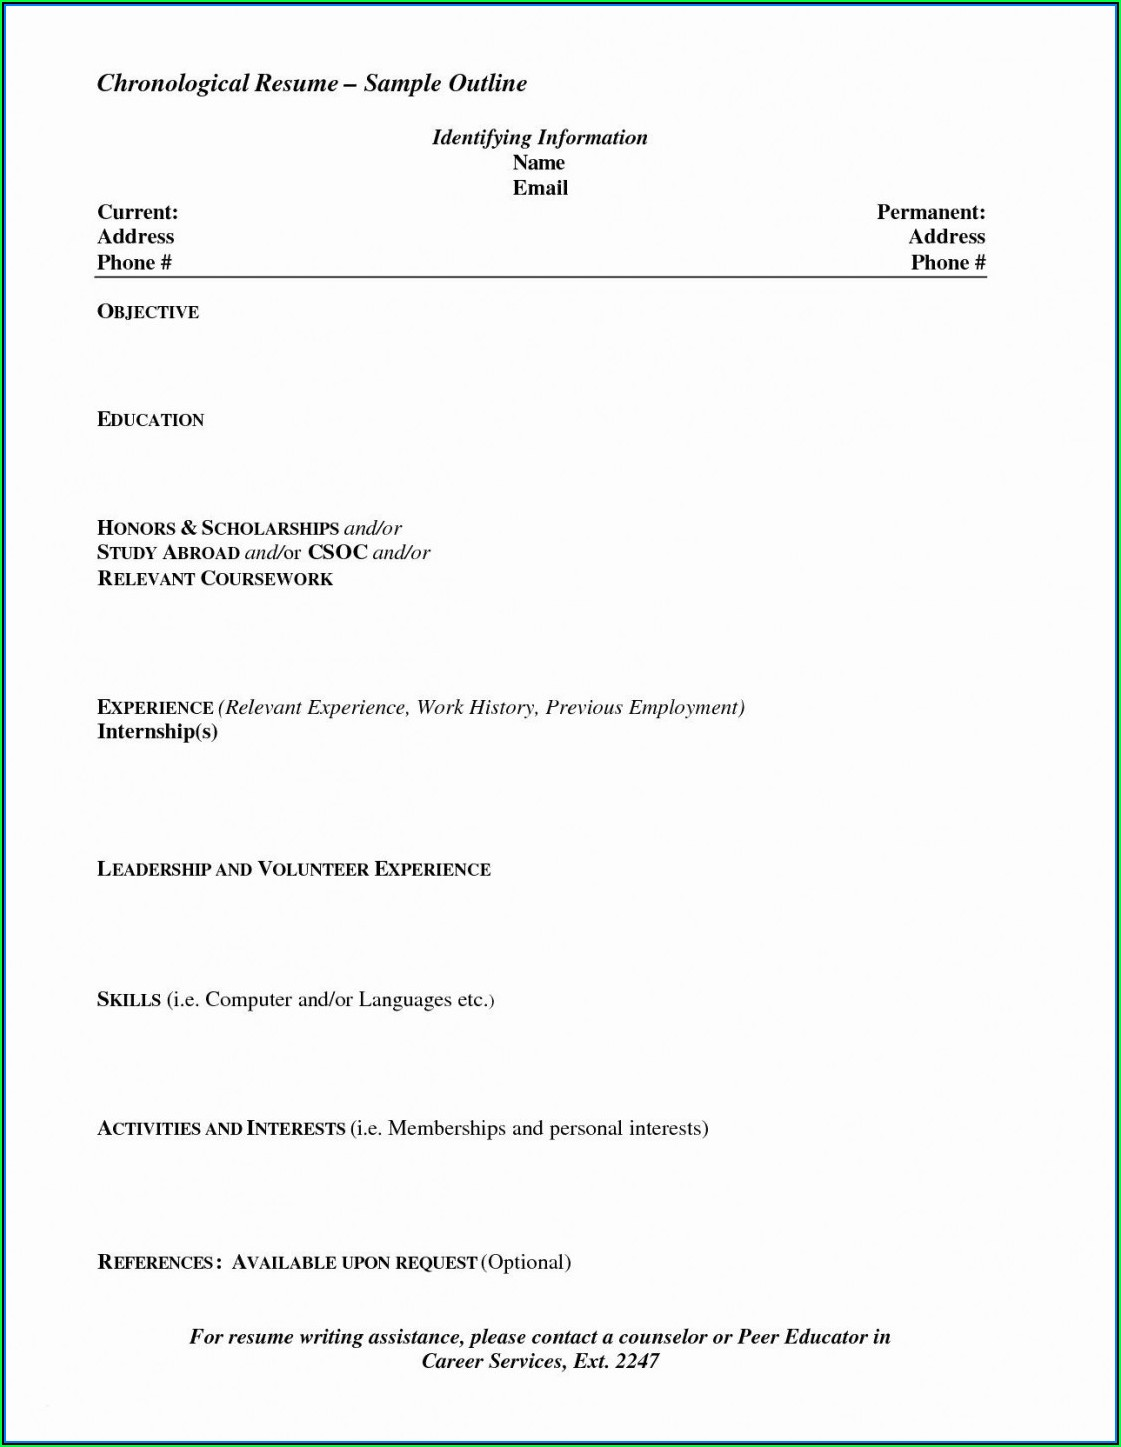 Free Chronological Resume Template Download